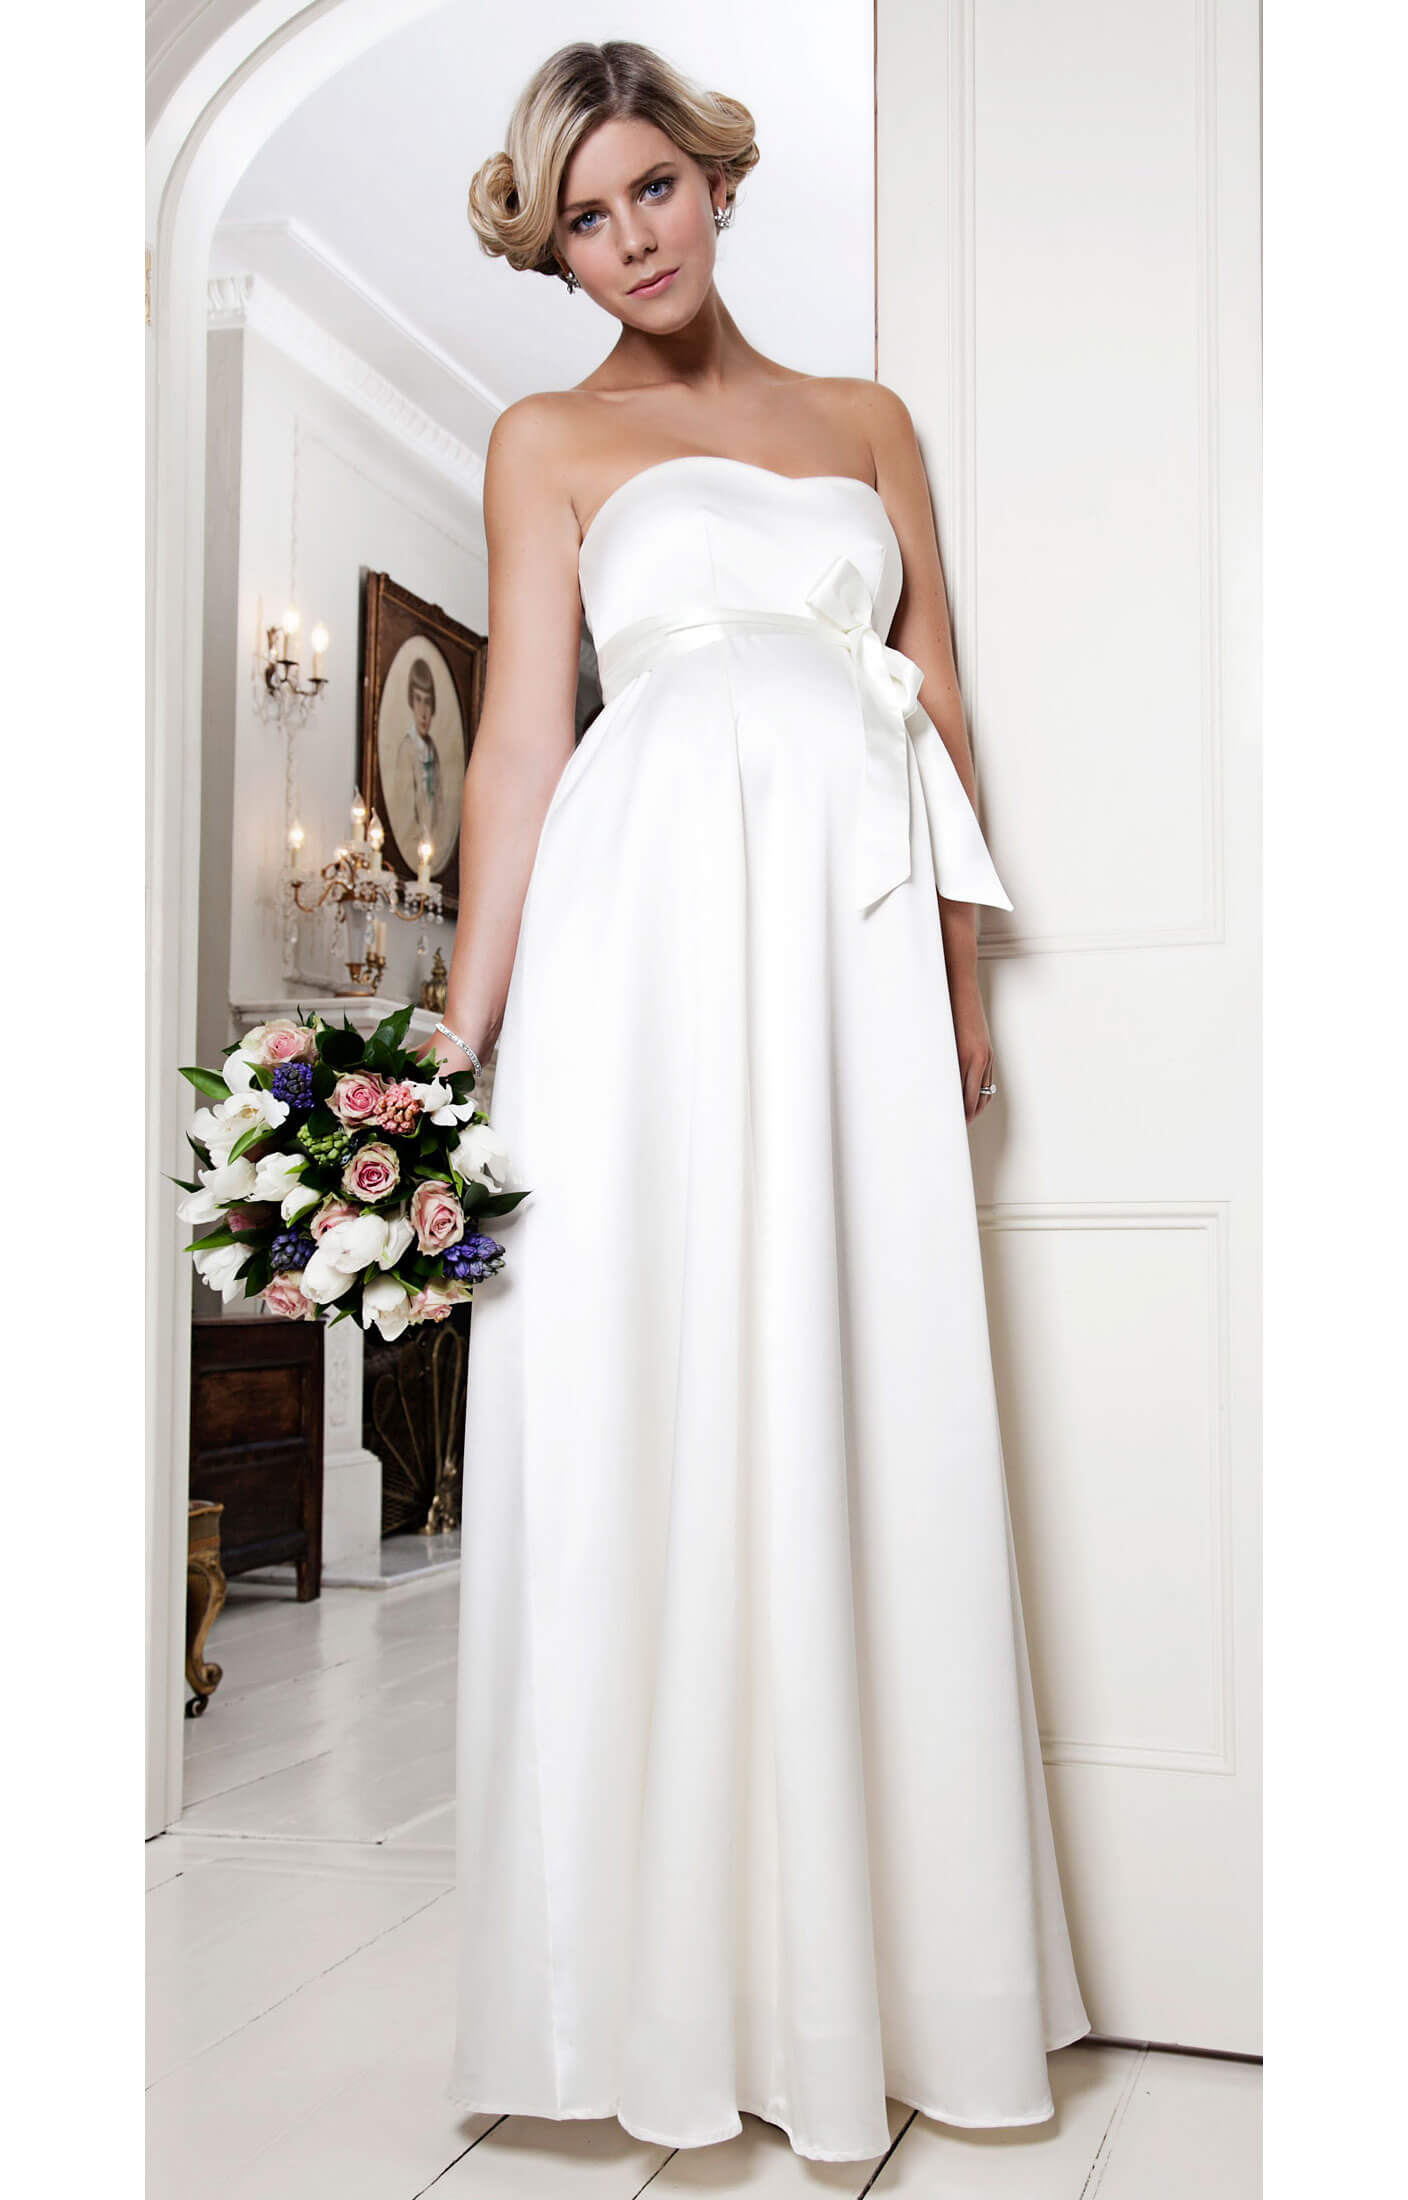 Alice maternity wedding gown ivory maternity wedding for Ivory maternity wedding dresses